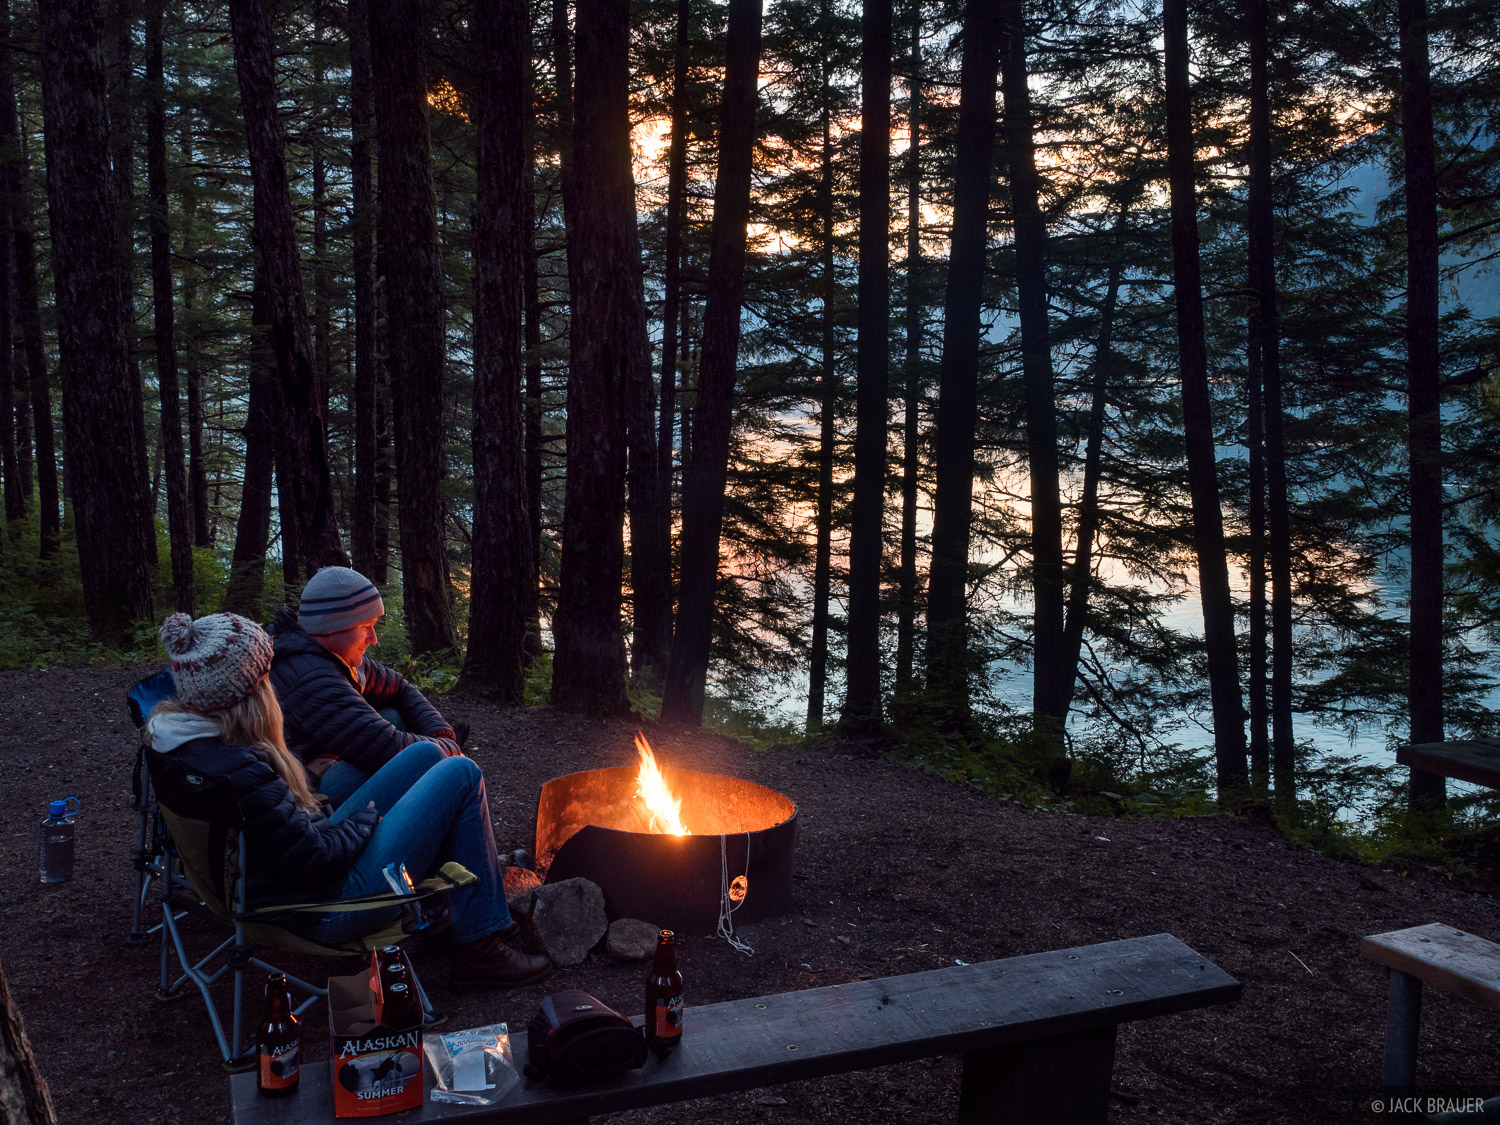 Alaska, Chilkoot Lake, Haines, campfire